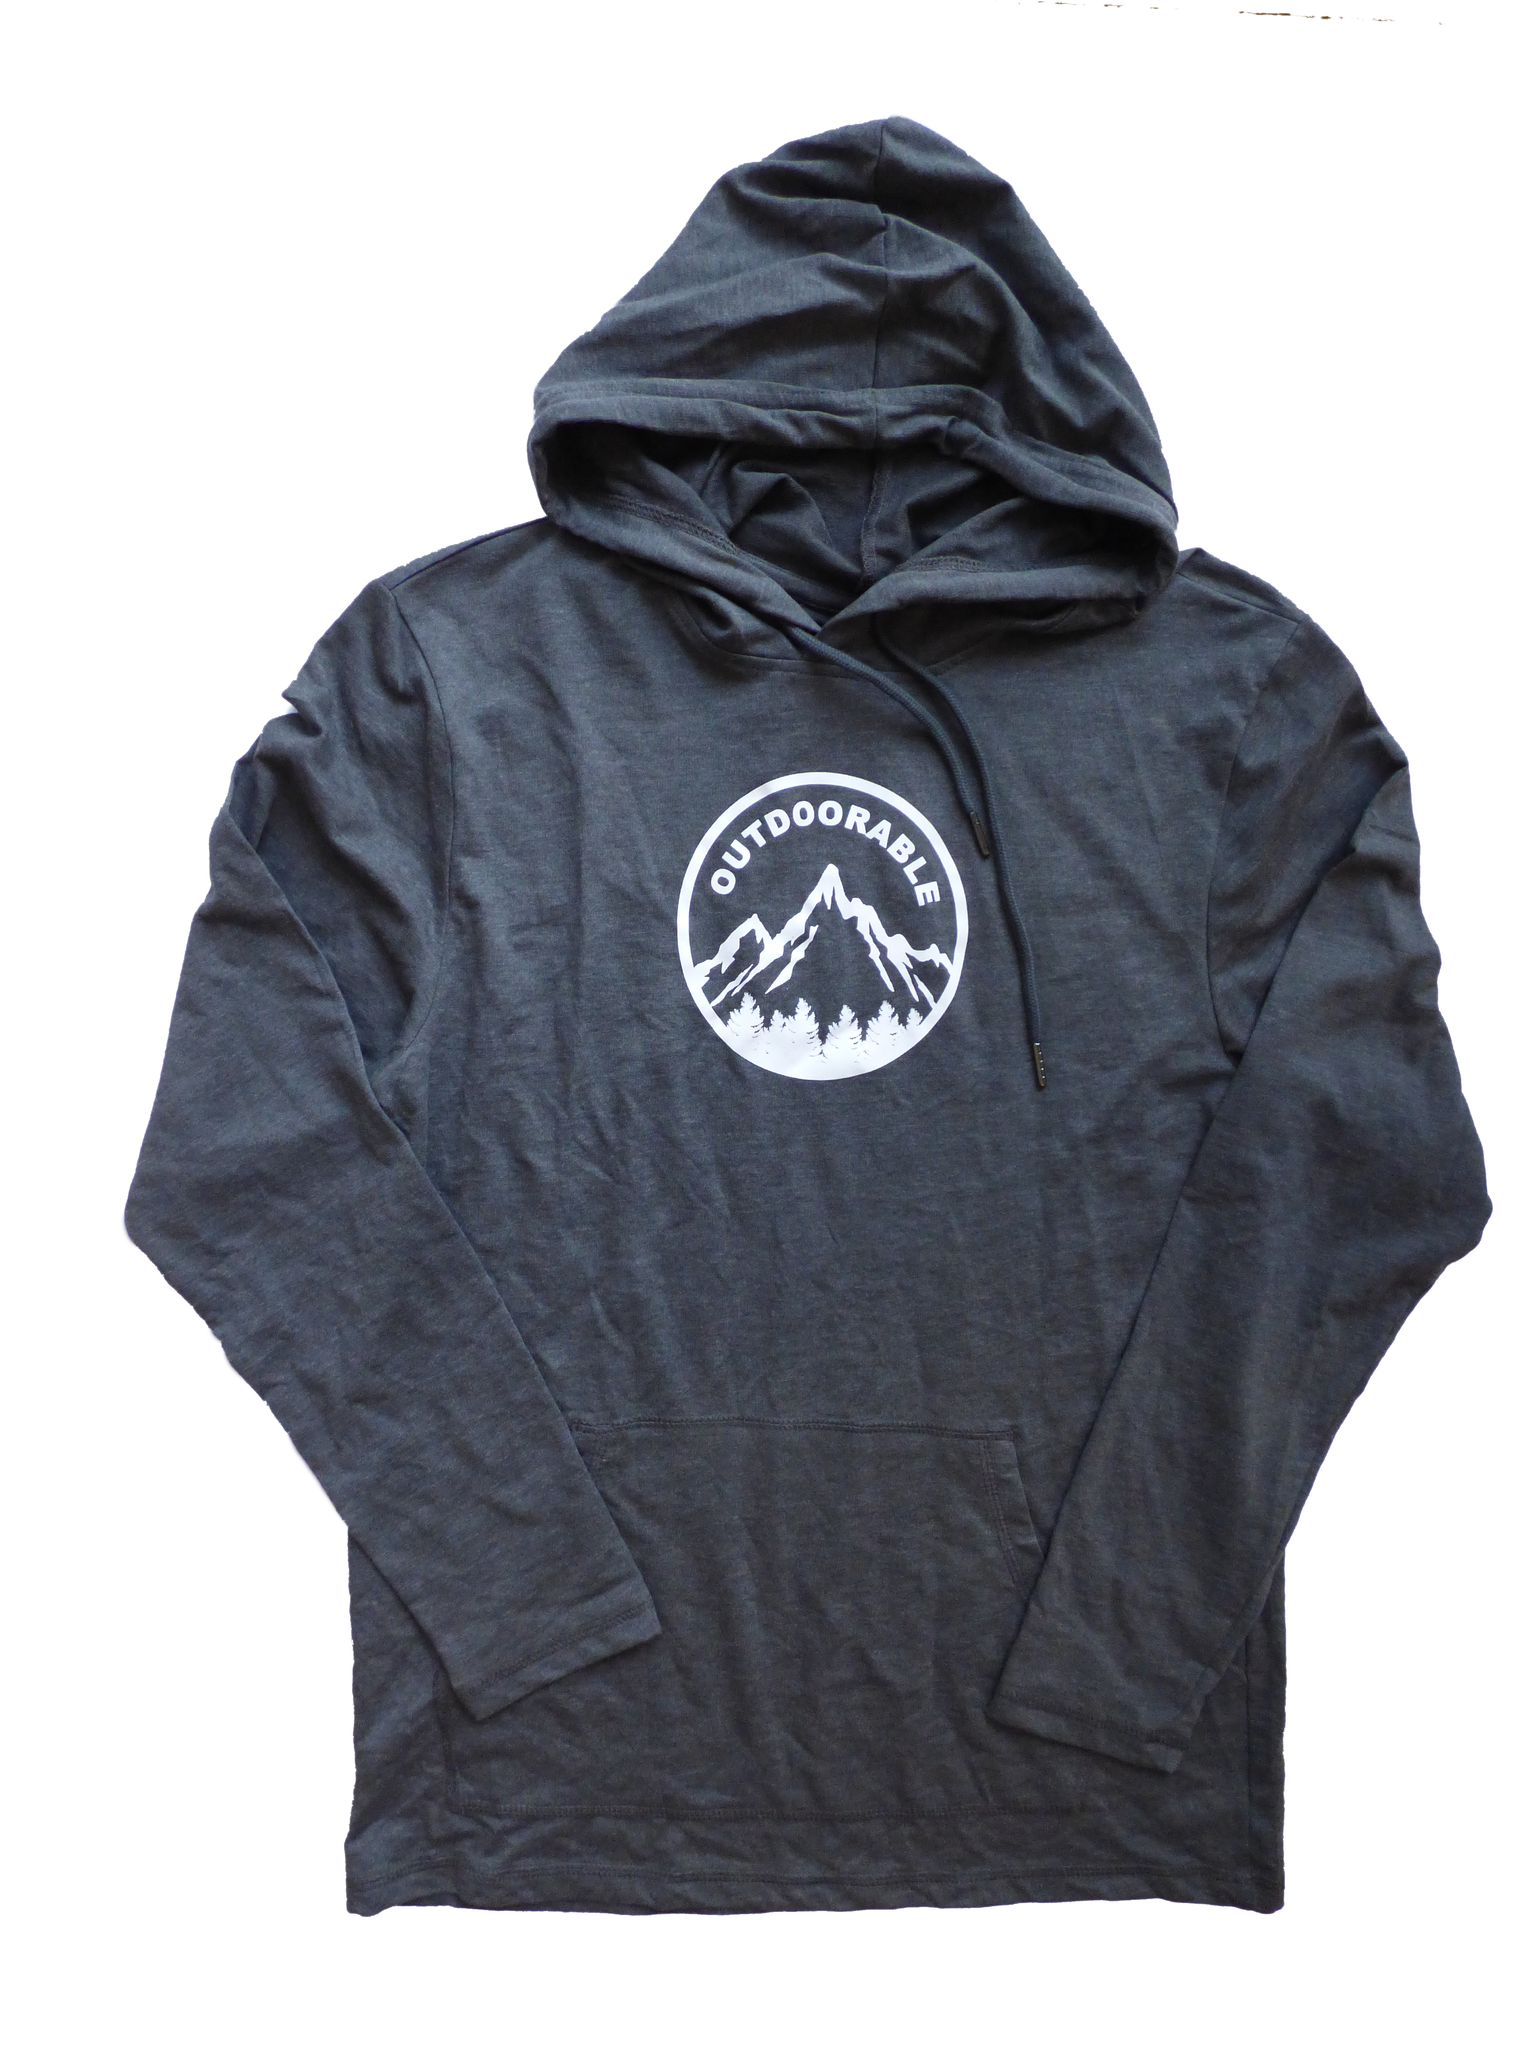 Outdoorable Charcoal Unisex Light Weight Hoodie